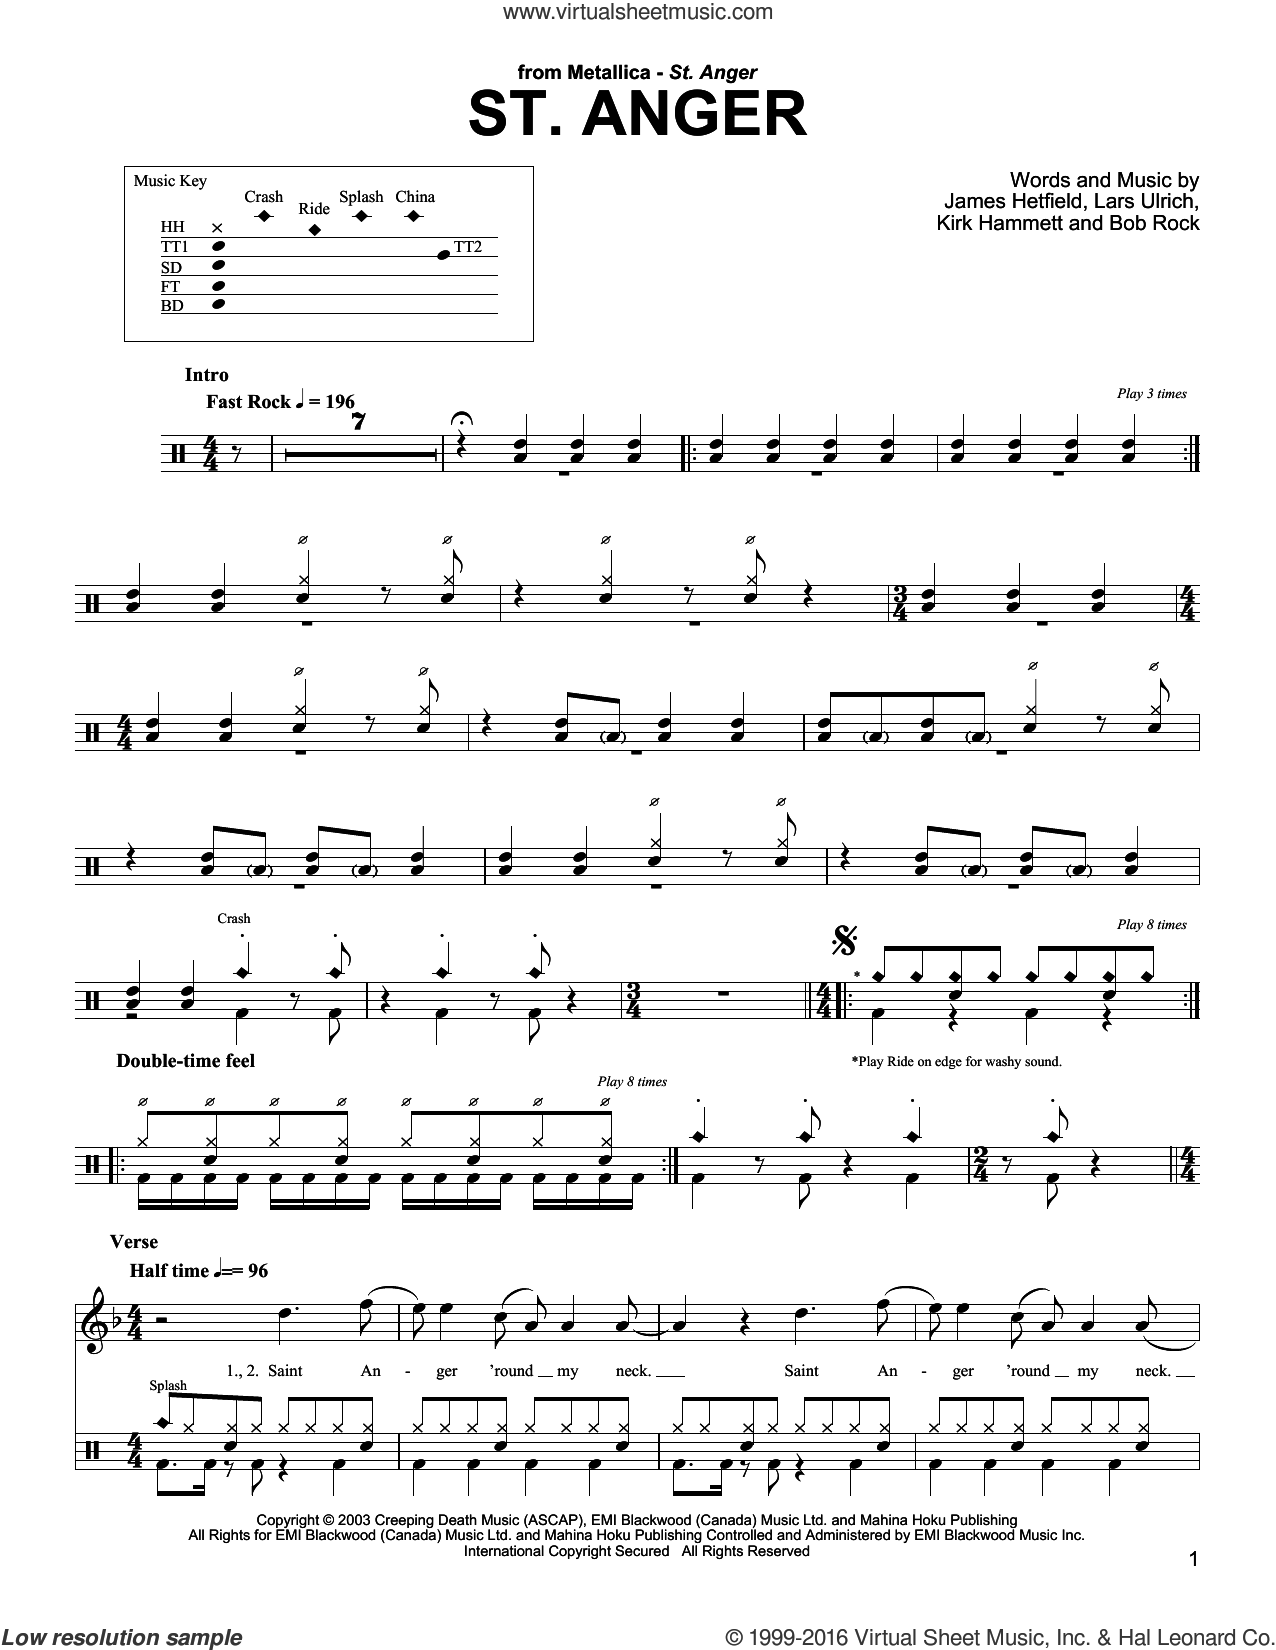 St. Anger sheet music for drums by Lars Ulrich, Bob Rock and James Hetfield. Score Image Preview.